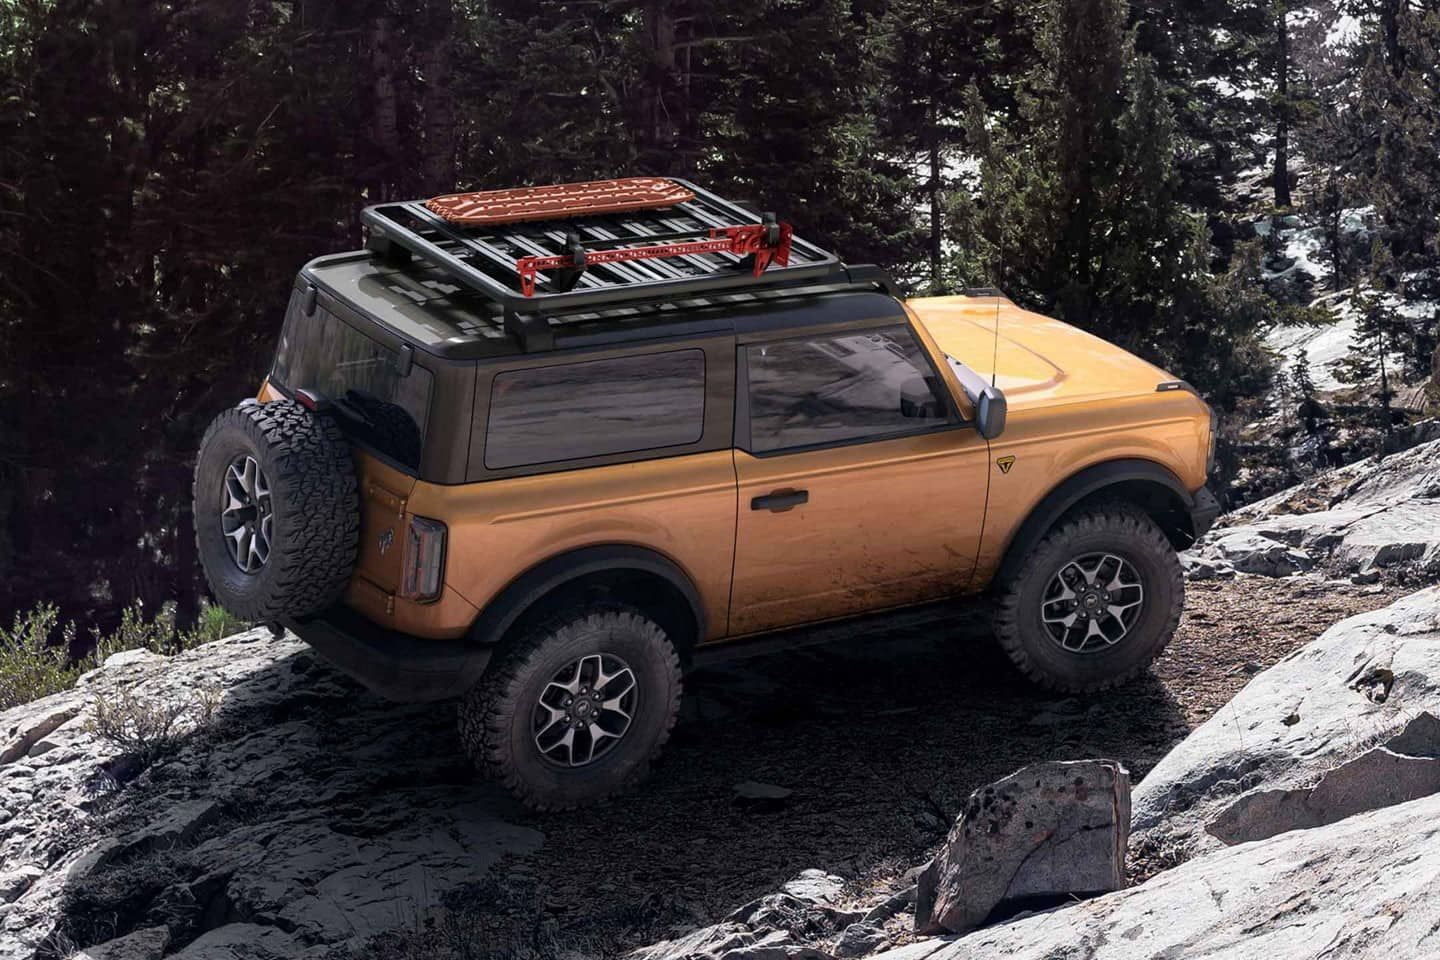 Https Www Ford Com Suvs Bronco 2021 Models Bronco Wildtrak In 2020 Ford Bronco Suv Models Bronco